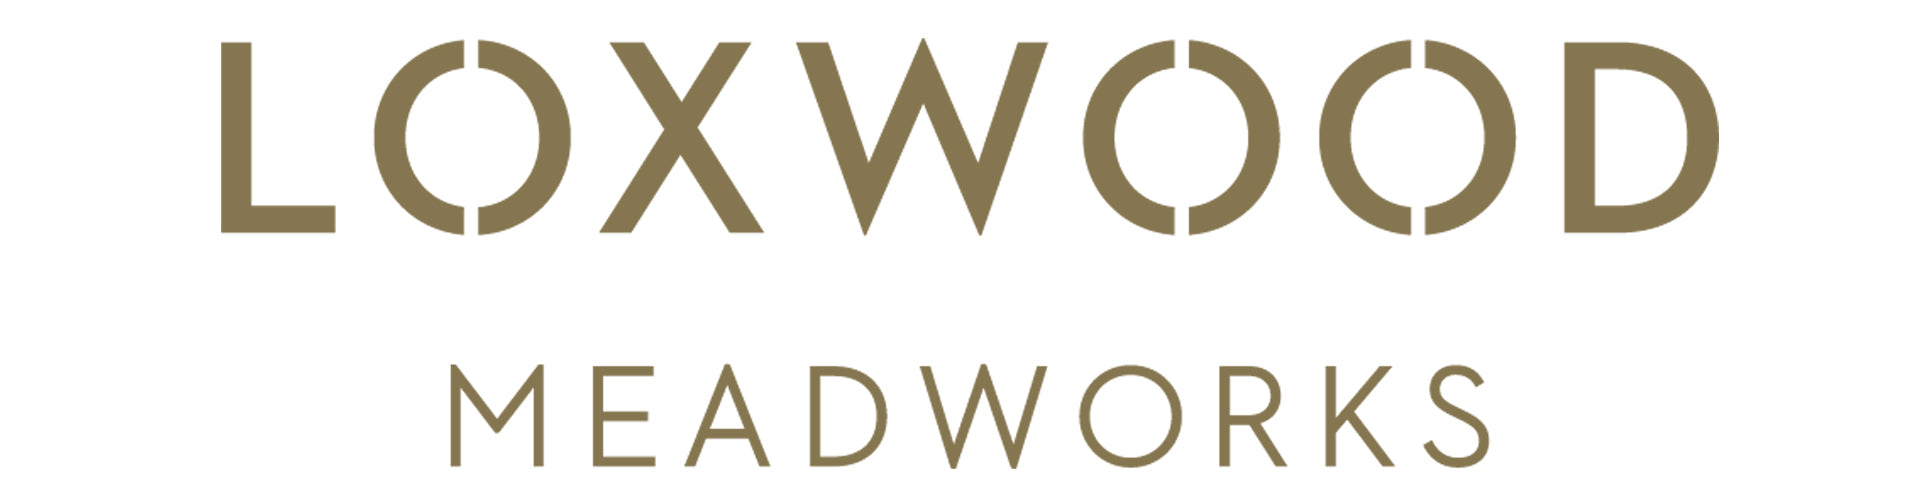 Loxwood Meadworks Logo